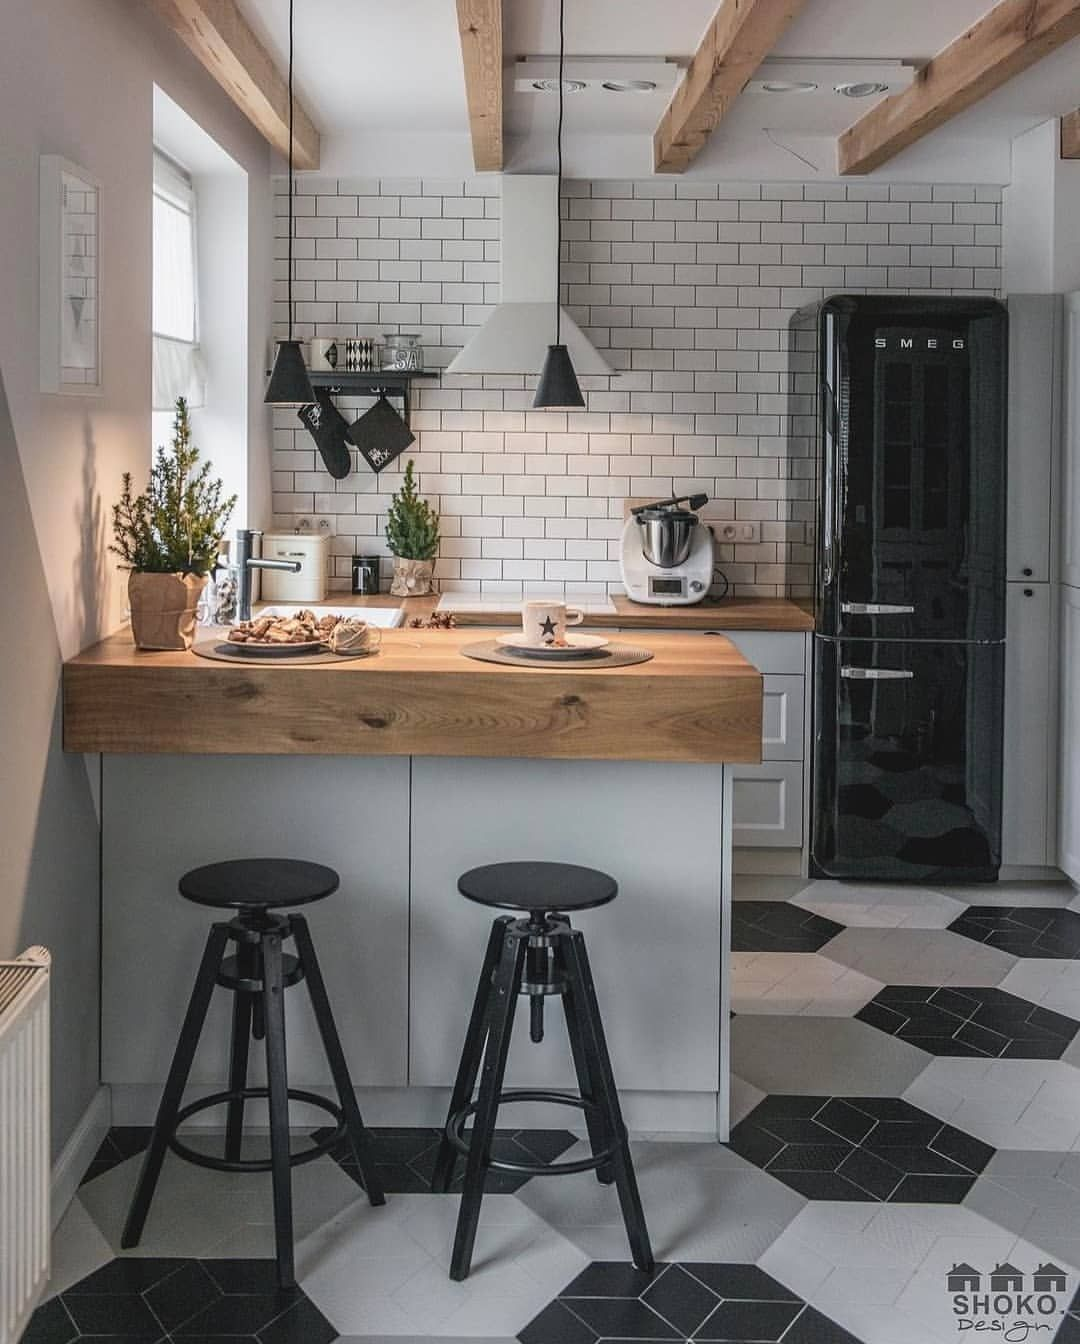 Archbuzzer Beautiful Small Cozy Kitchen From Project Poudre No 22 Is Designed By Shokodesig Kitchen Design Small Interior Design Kitchen Home Decor Kitchen